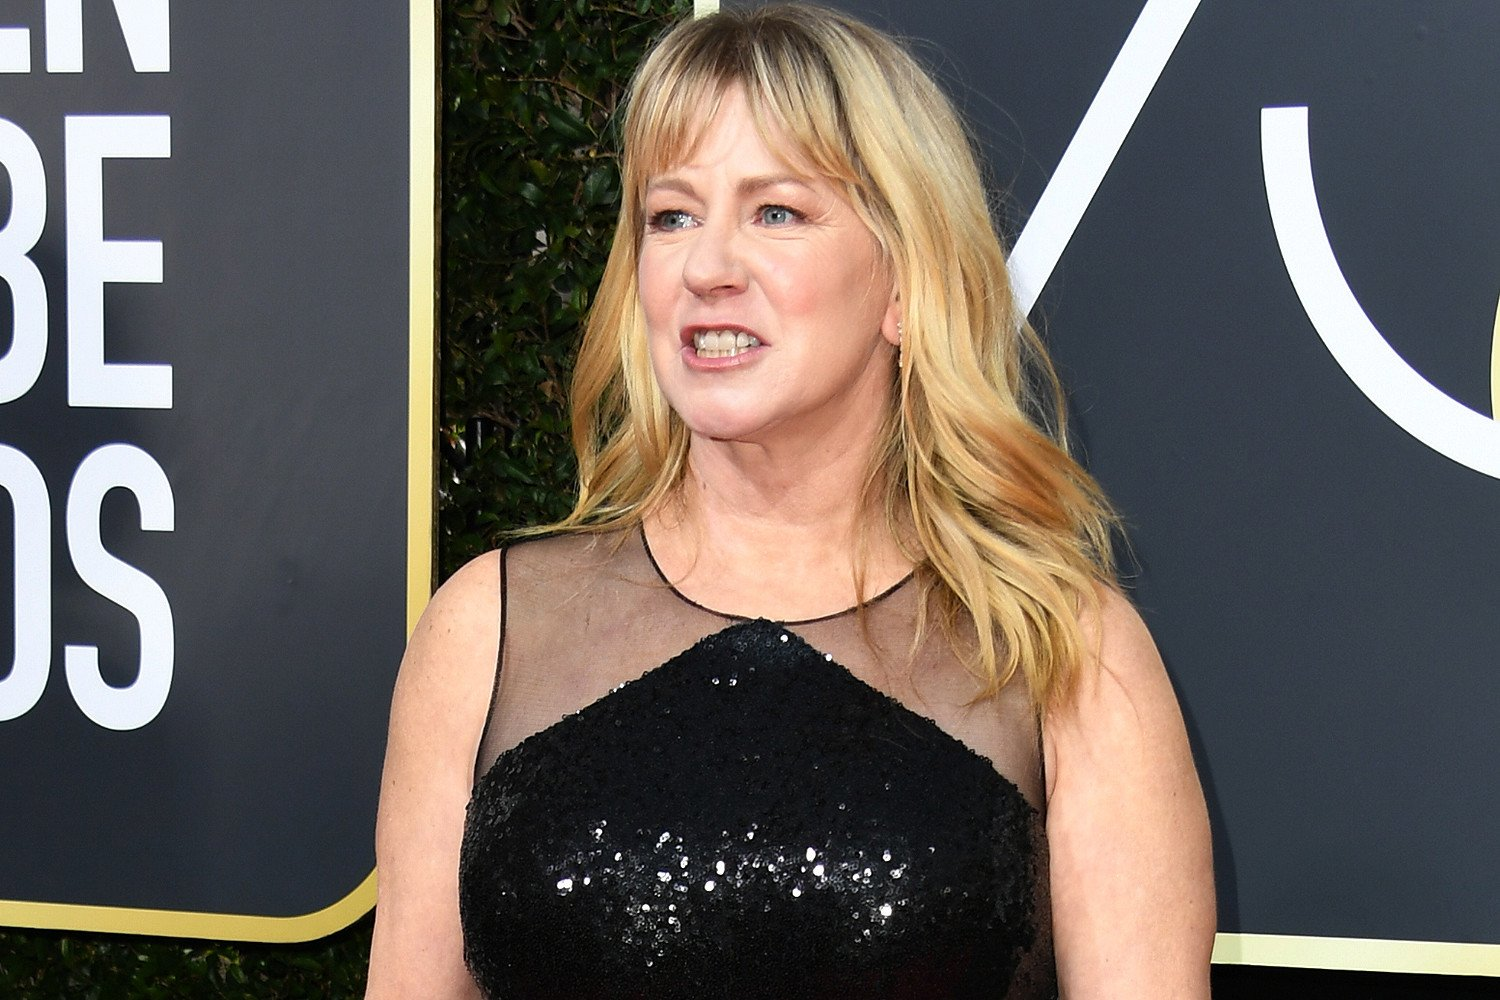 Tonya Harding's agent dumps her over $25,000 media plan